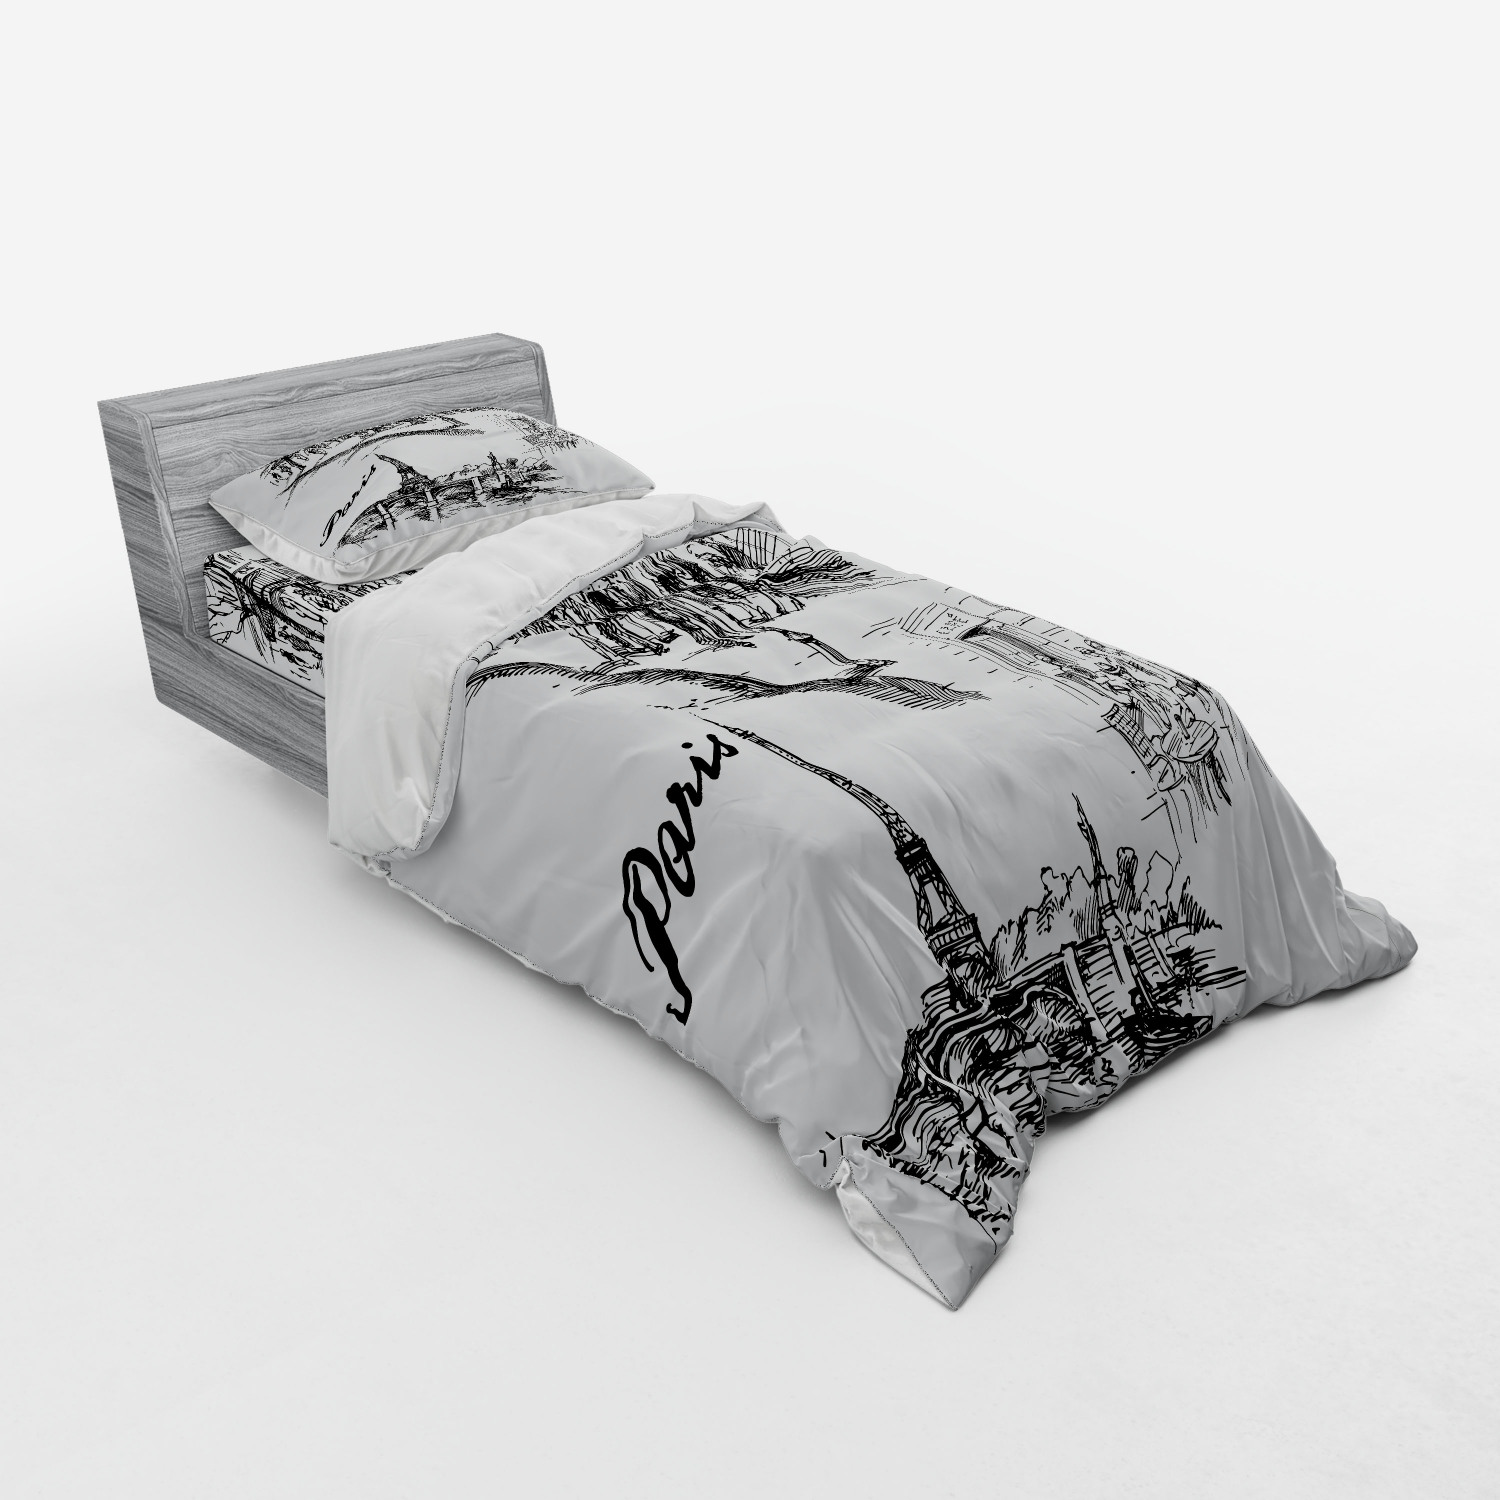 thumbnail 173 - Ambesonne Black White Art Bedding Set Duvet Cover Sham Fitted Sheet in 3 Sizes